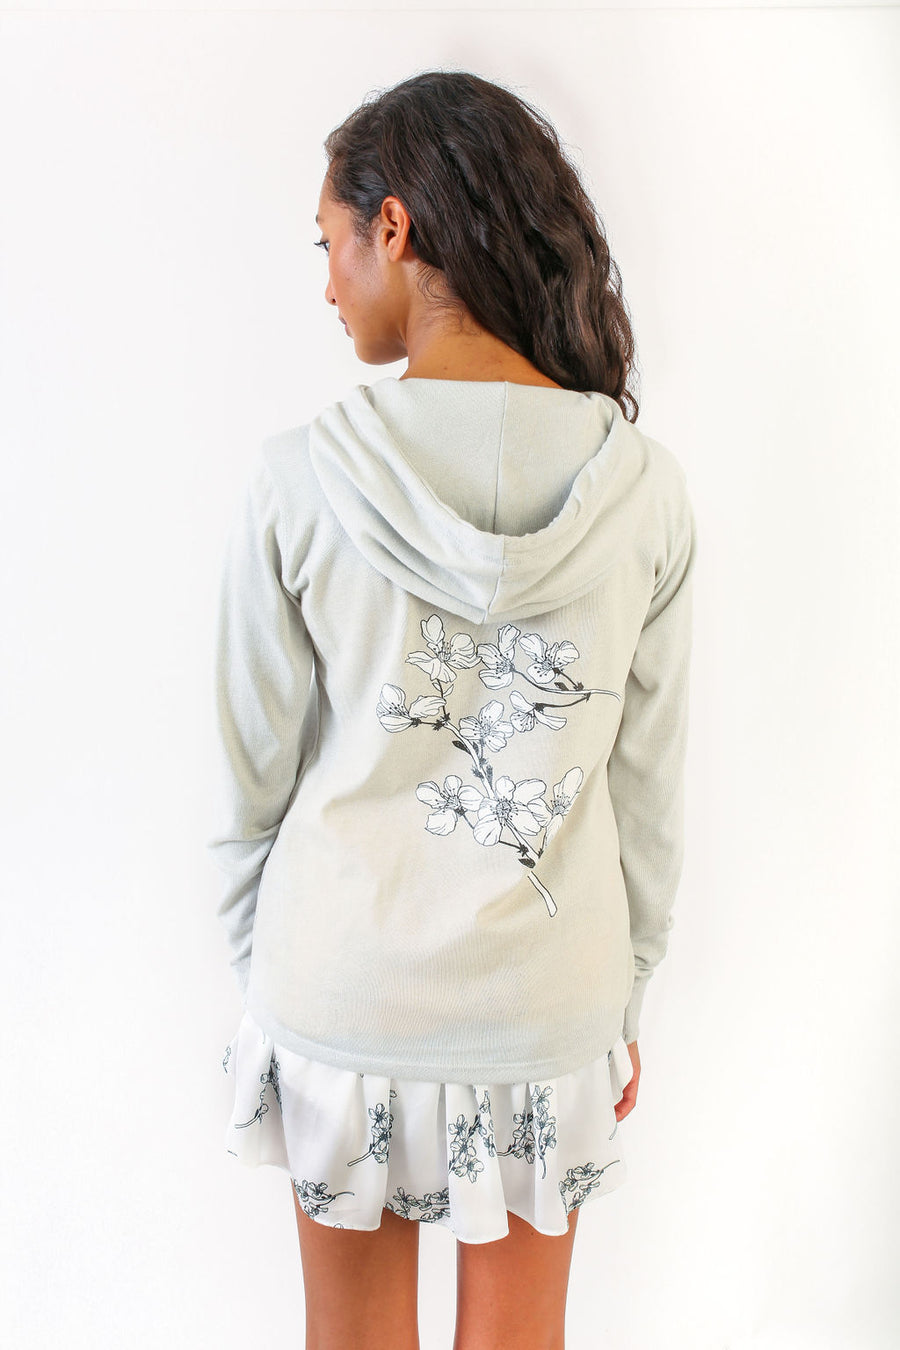 MORGAN SWEATSHIRT GREY *LIMITED*EDITION*